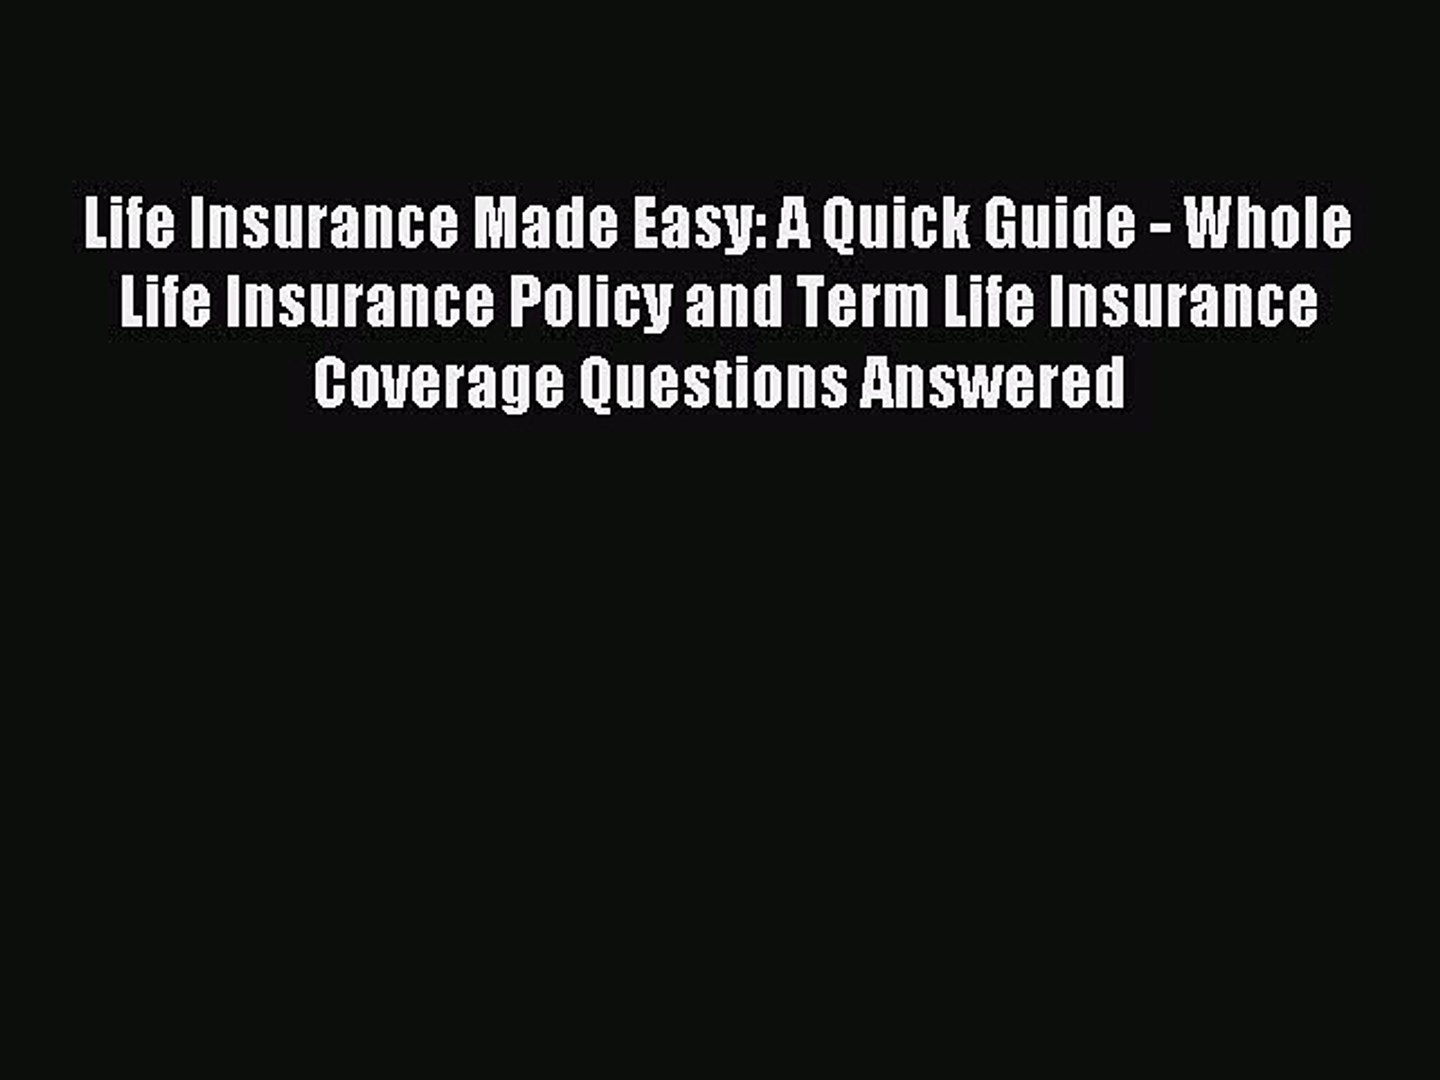 Read Life Insurance Made Easy: A Quick Guide - Whole Life Insurance Policy and Term Life Insurance